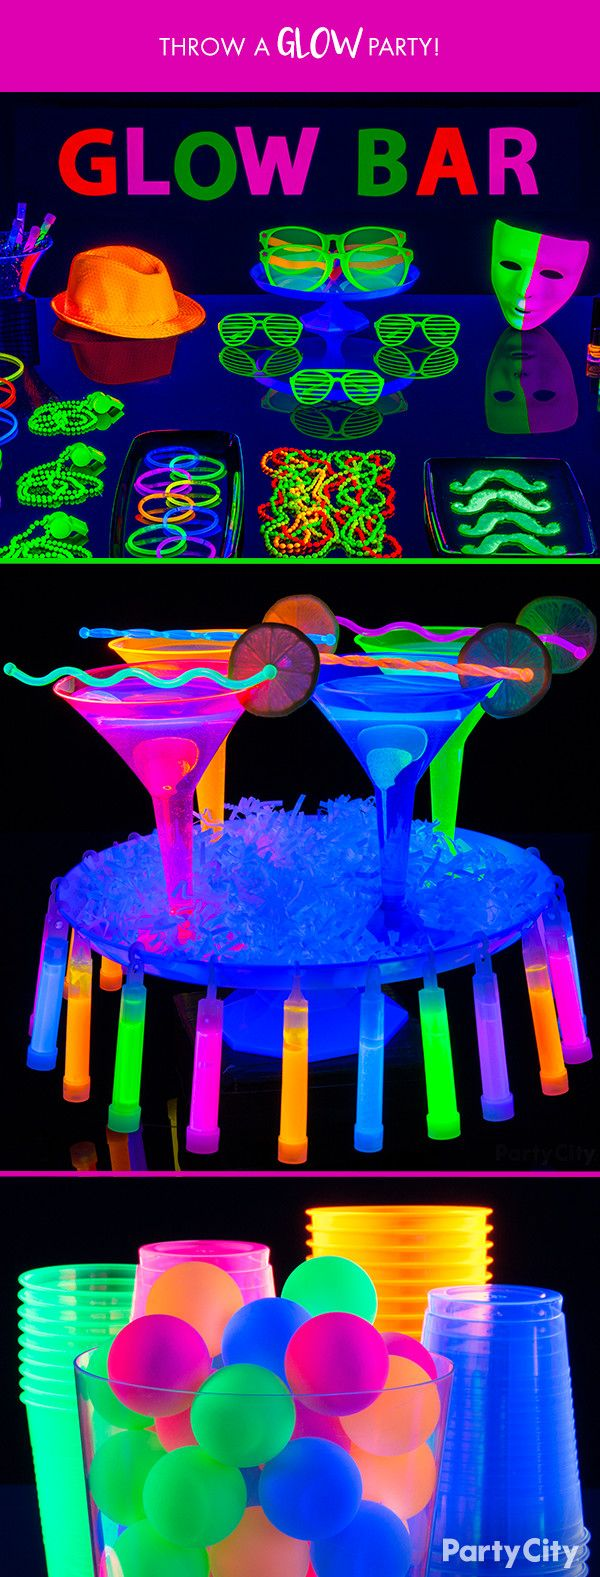 black light party ideas soir e fluo pinterest soir e fluo anniversaire et deco anniversaire. Black Bedroom Furniture Sets. Home Design Ideas